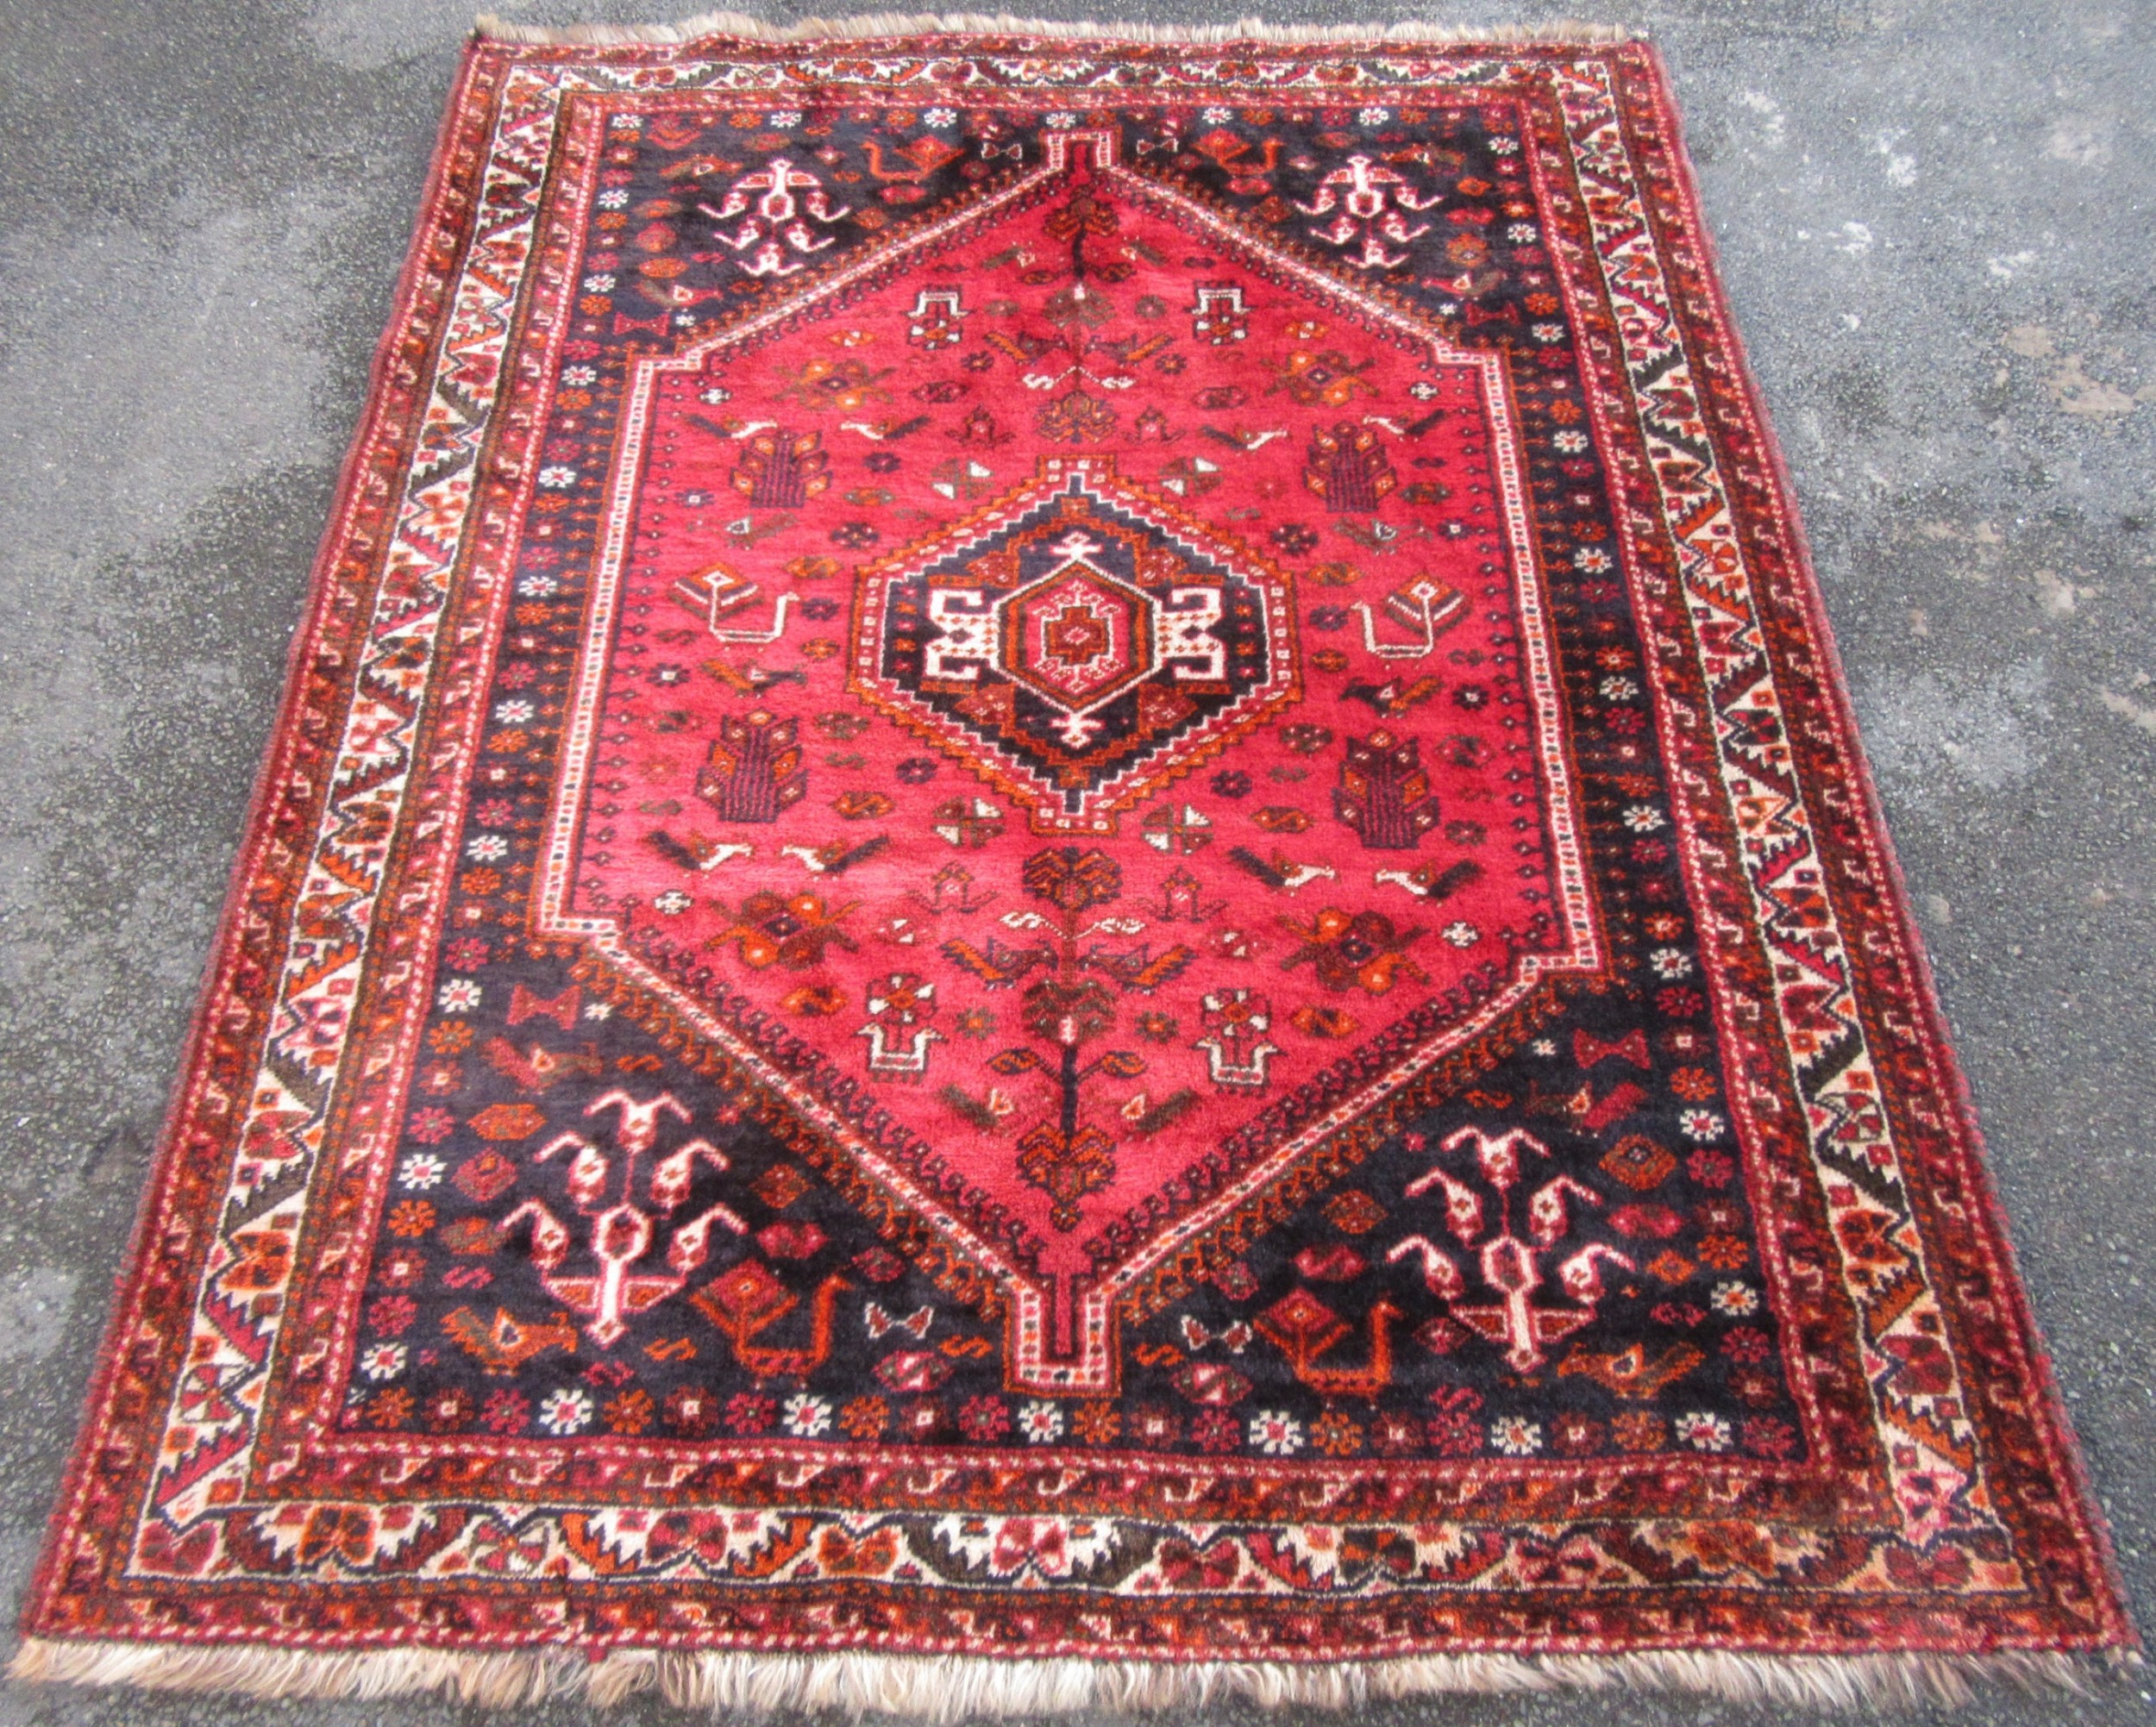 old south west persian shiraz region qashqai small carpet large rug peacocks birds